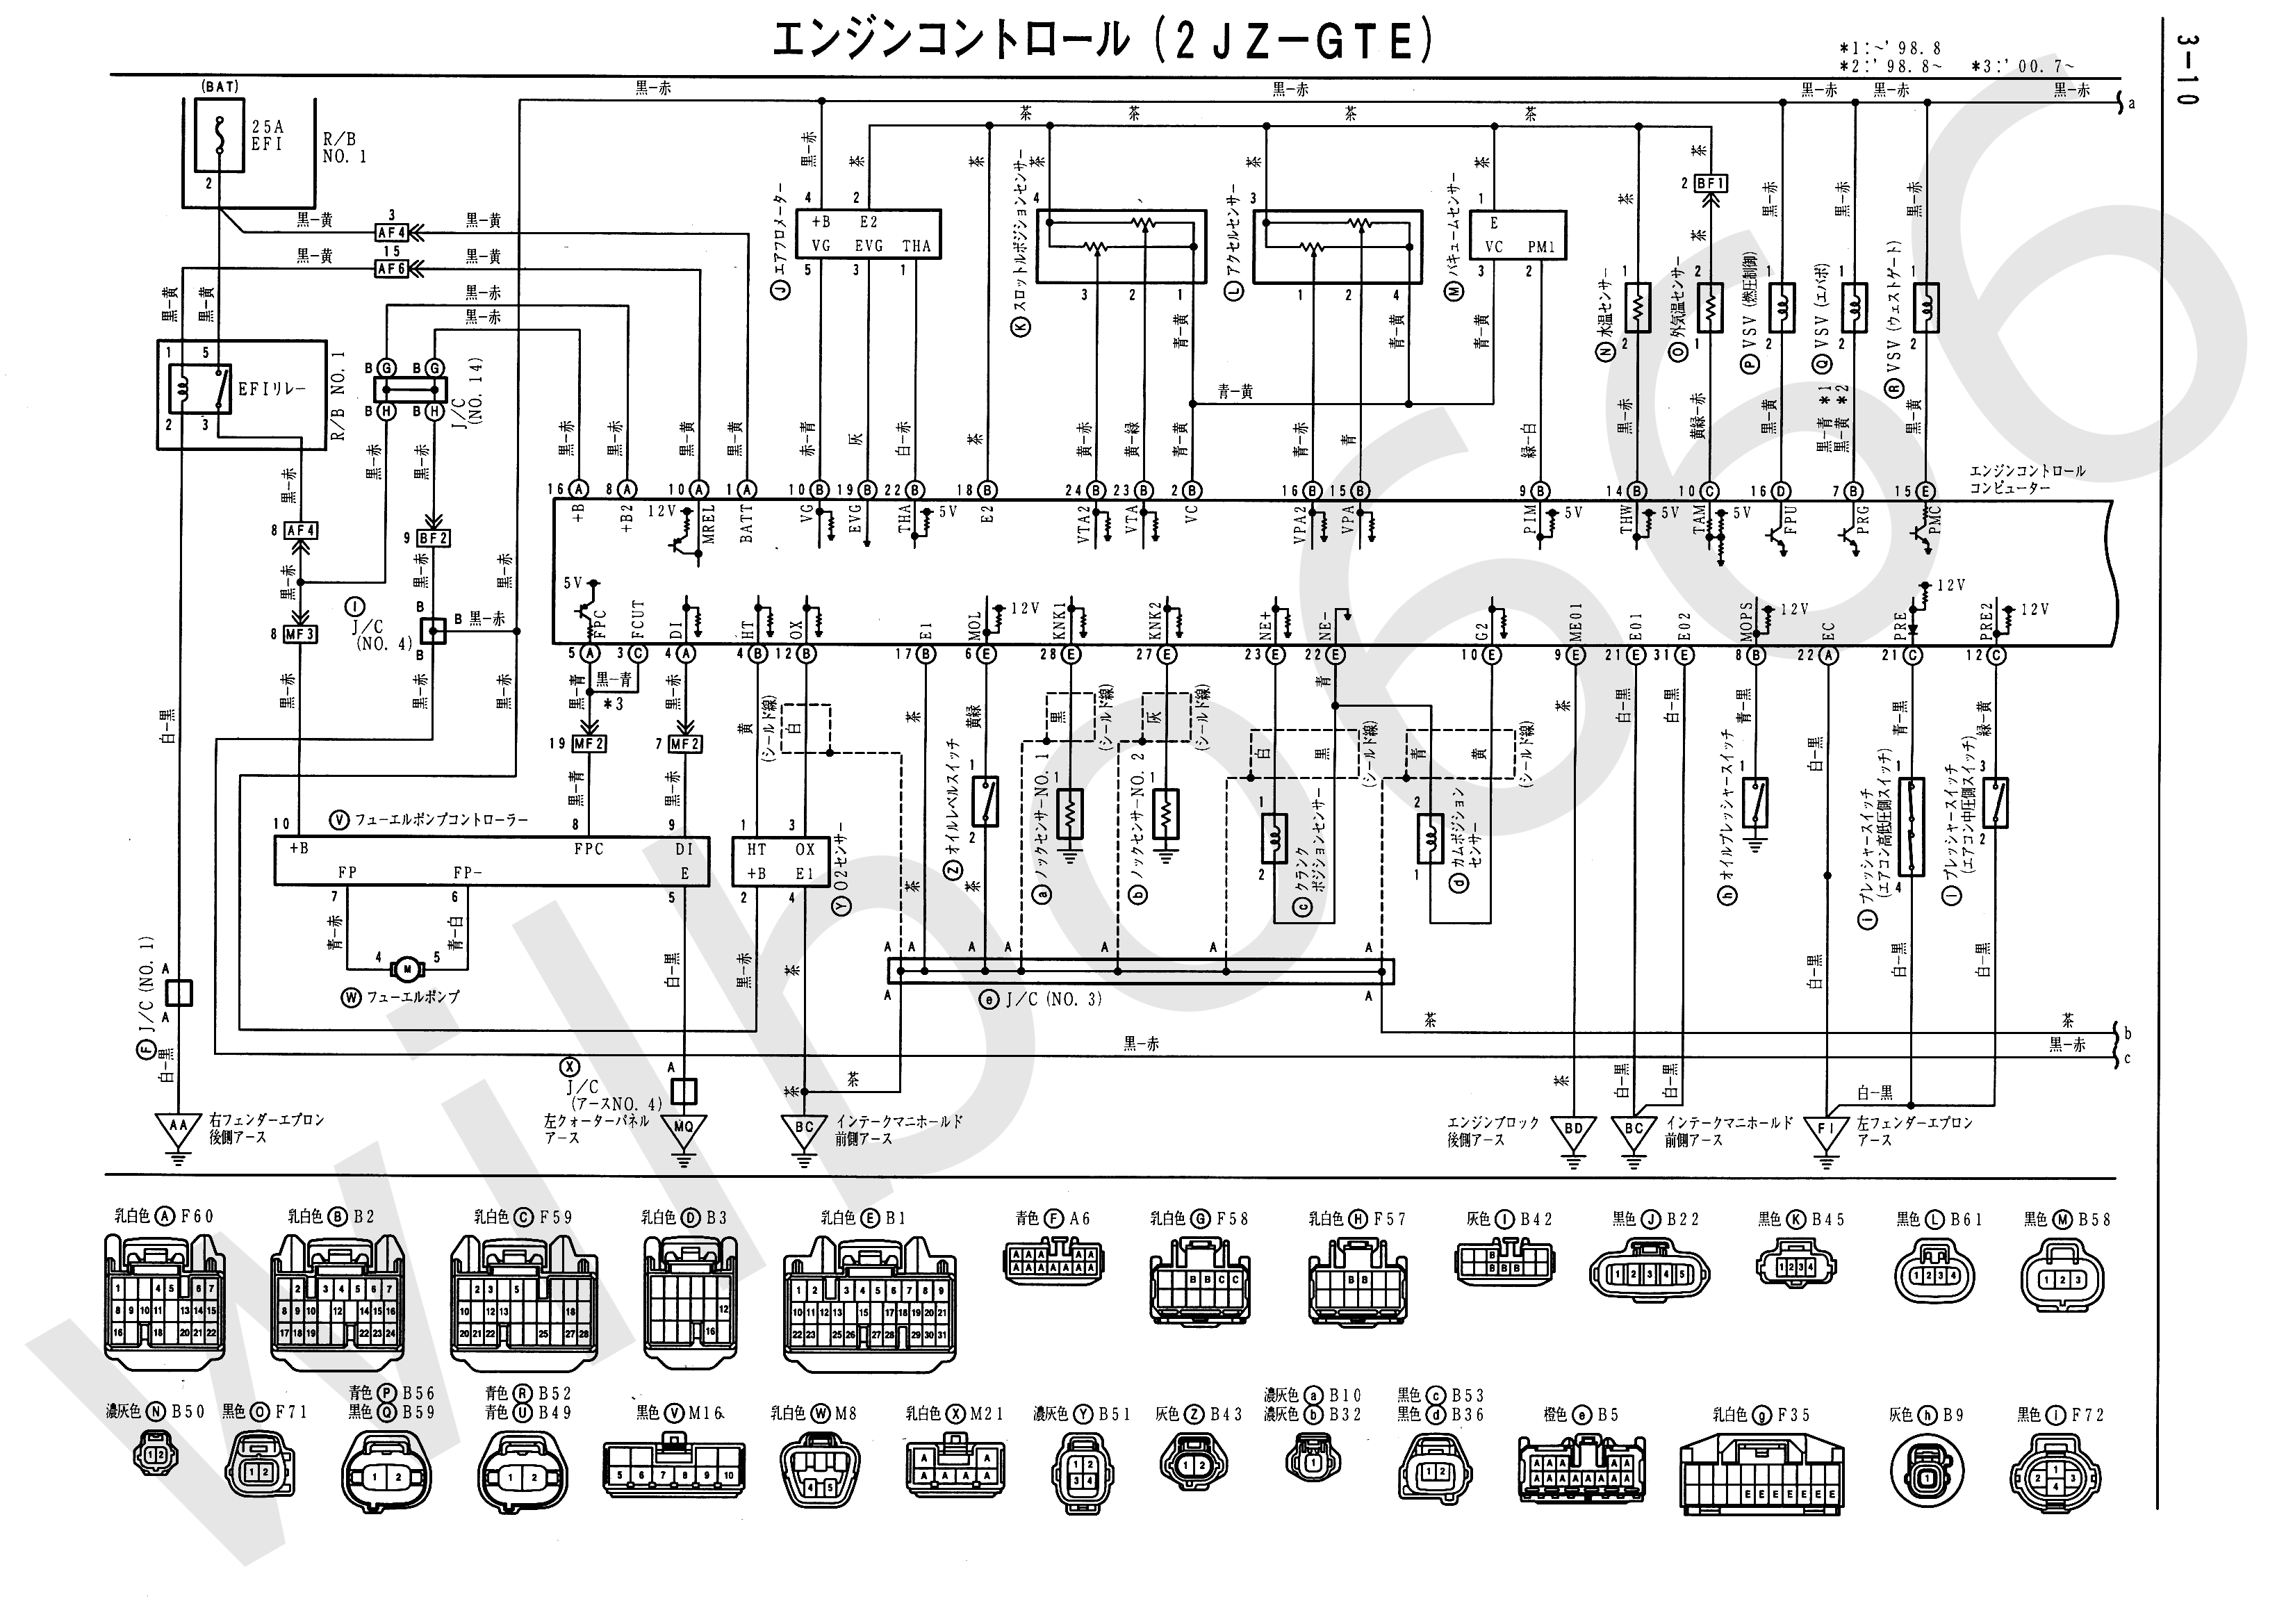 JZS161 Electrical Wiring Diagram 6748505 3 10?resize\\\=665%2C471 diagrams 16321340 jlg 40e battery wiring diagram jlg 40e  at reclaimingppi.co